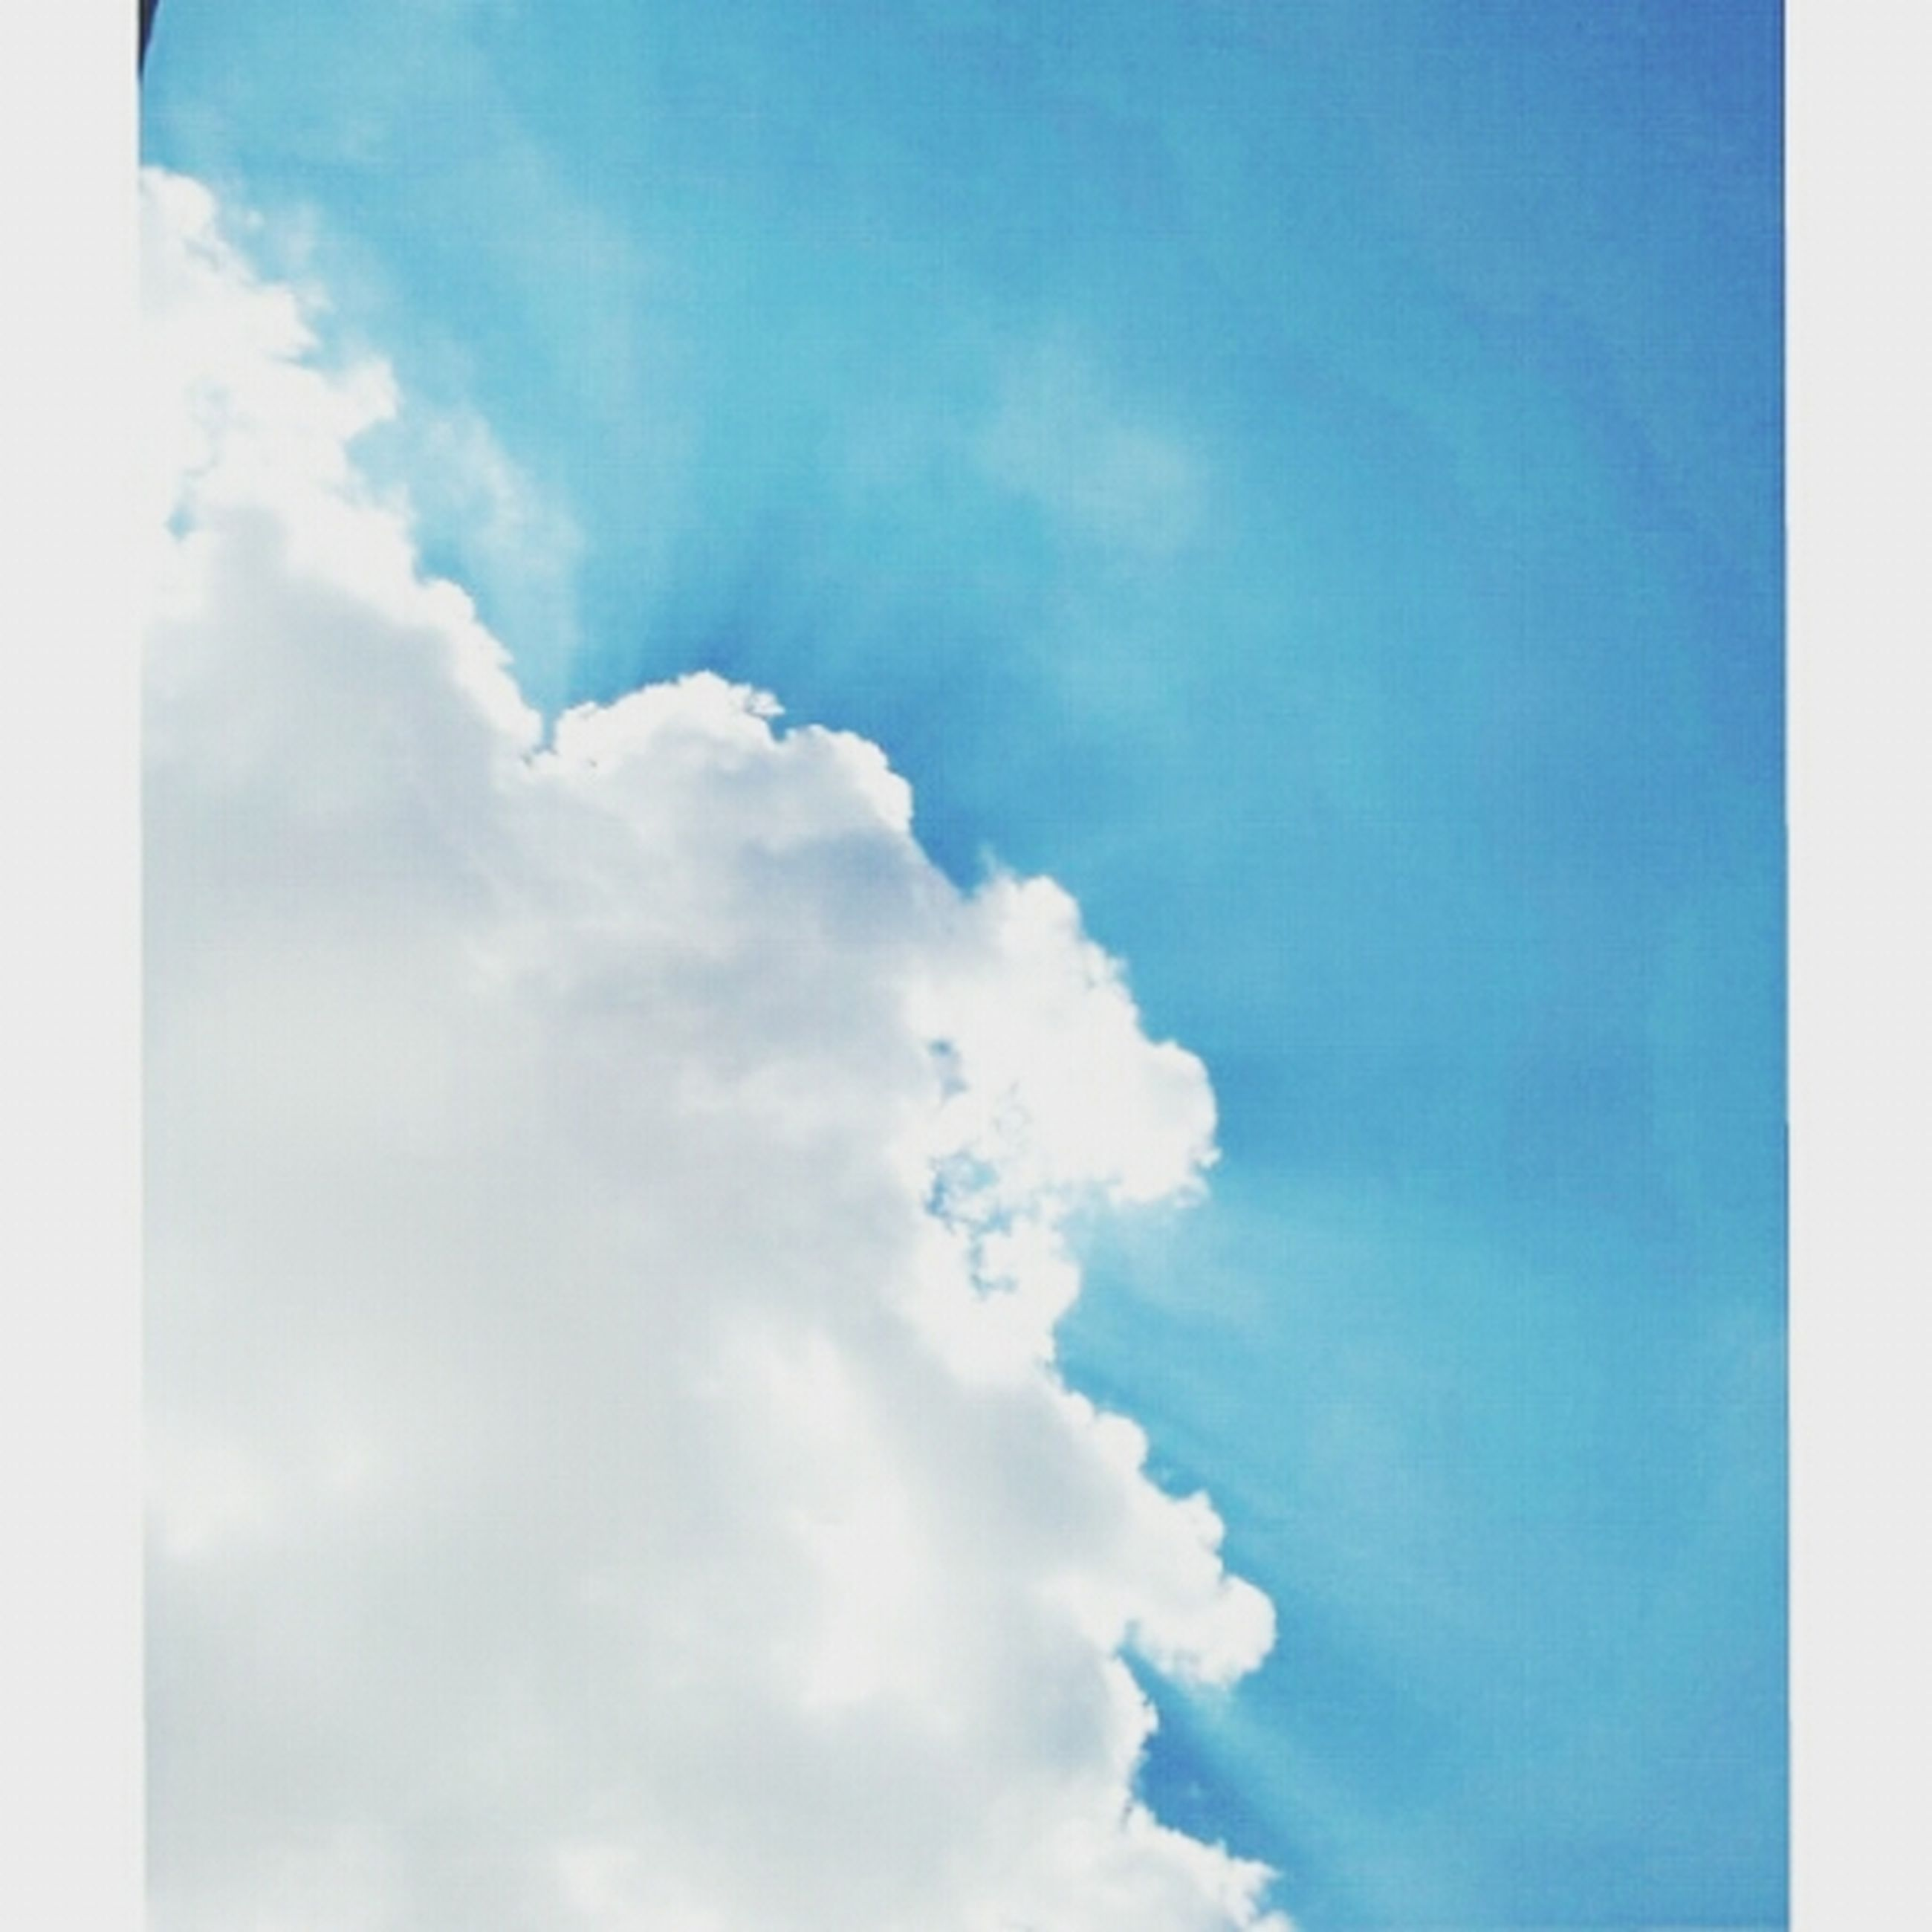 sky, low angle view, blue, cloud - sky, cloud, sky only, beauty in nature, cloudy, nature, scenics, tranquility, cloudscape, backgrounds, tranquil scene, day, no people, outdoors, white color, idyllic, white